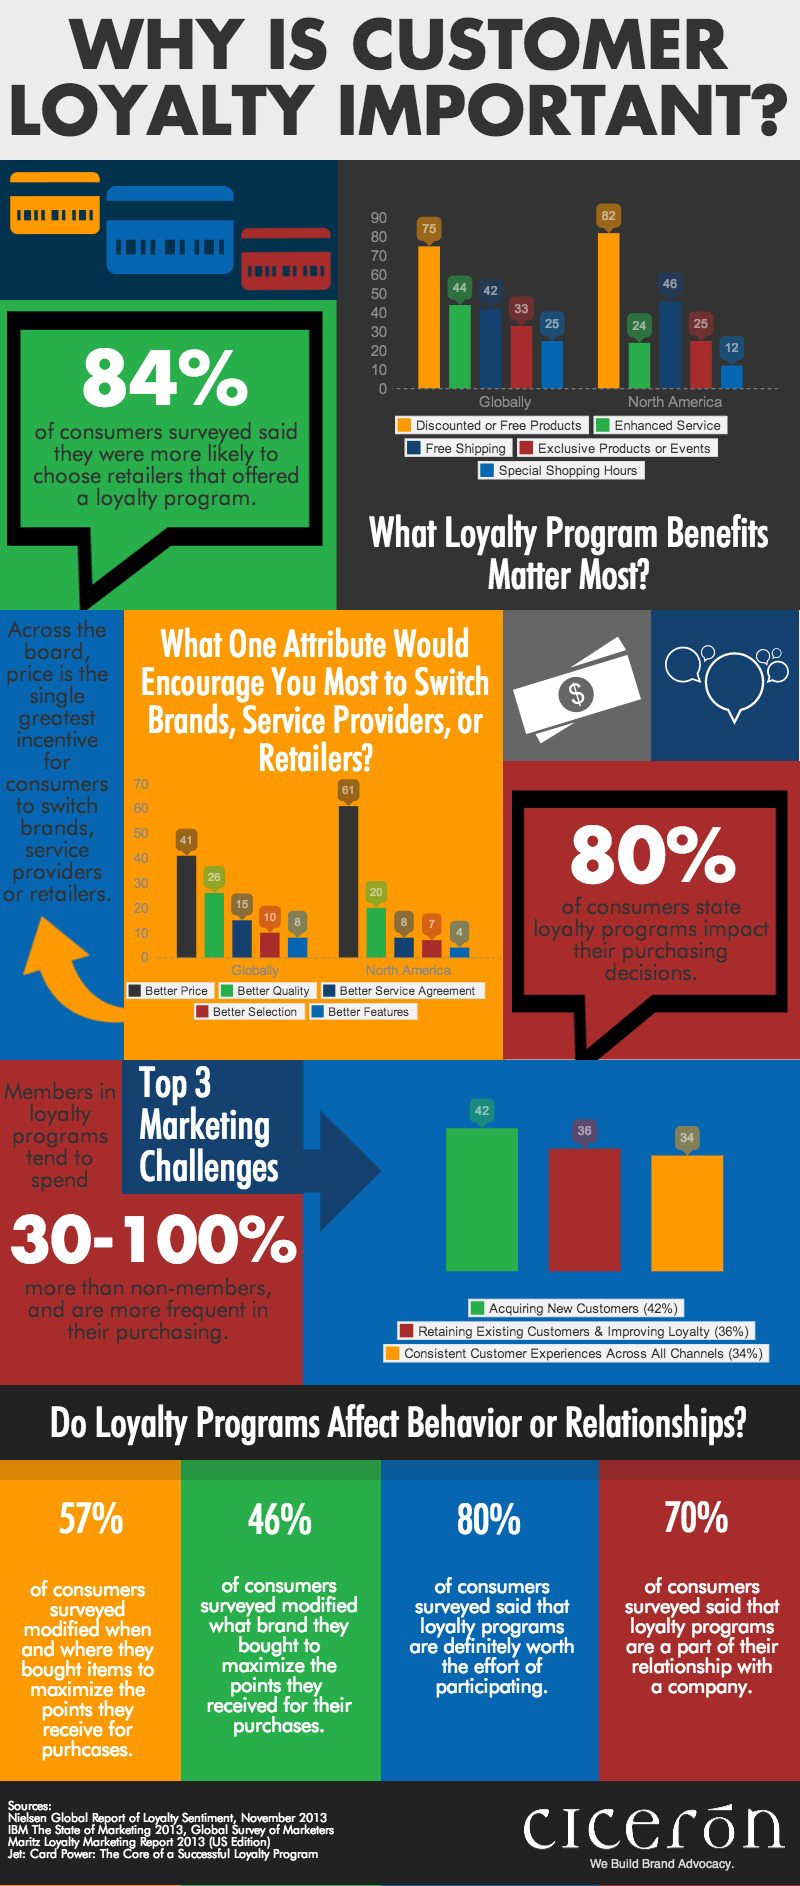 Why-is-customer-loyalty-important-infographic